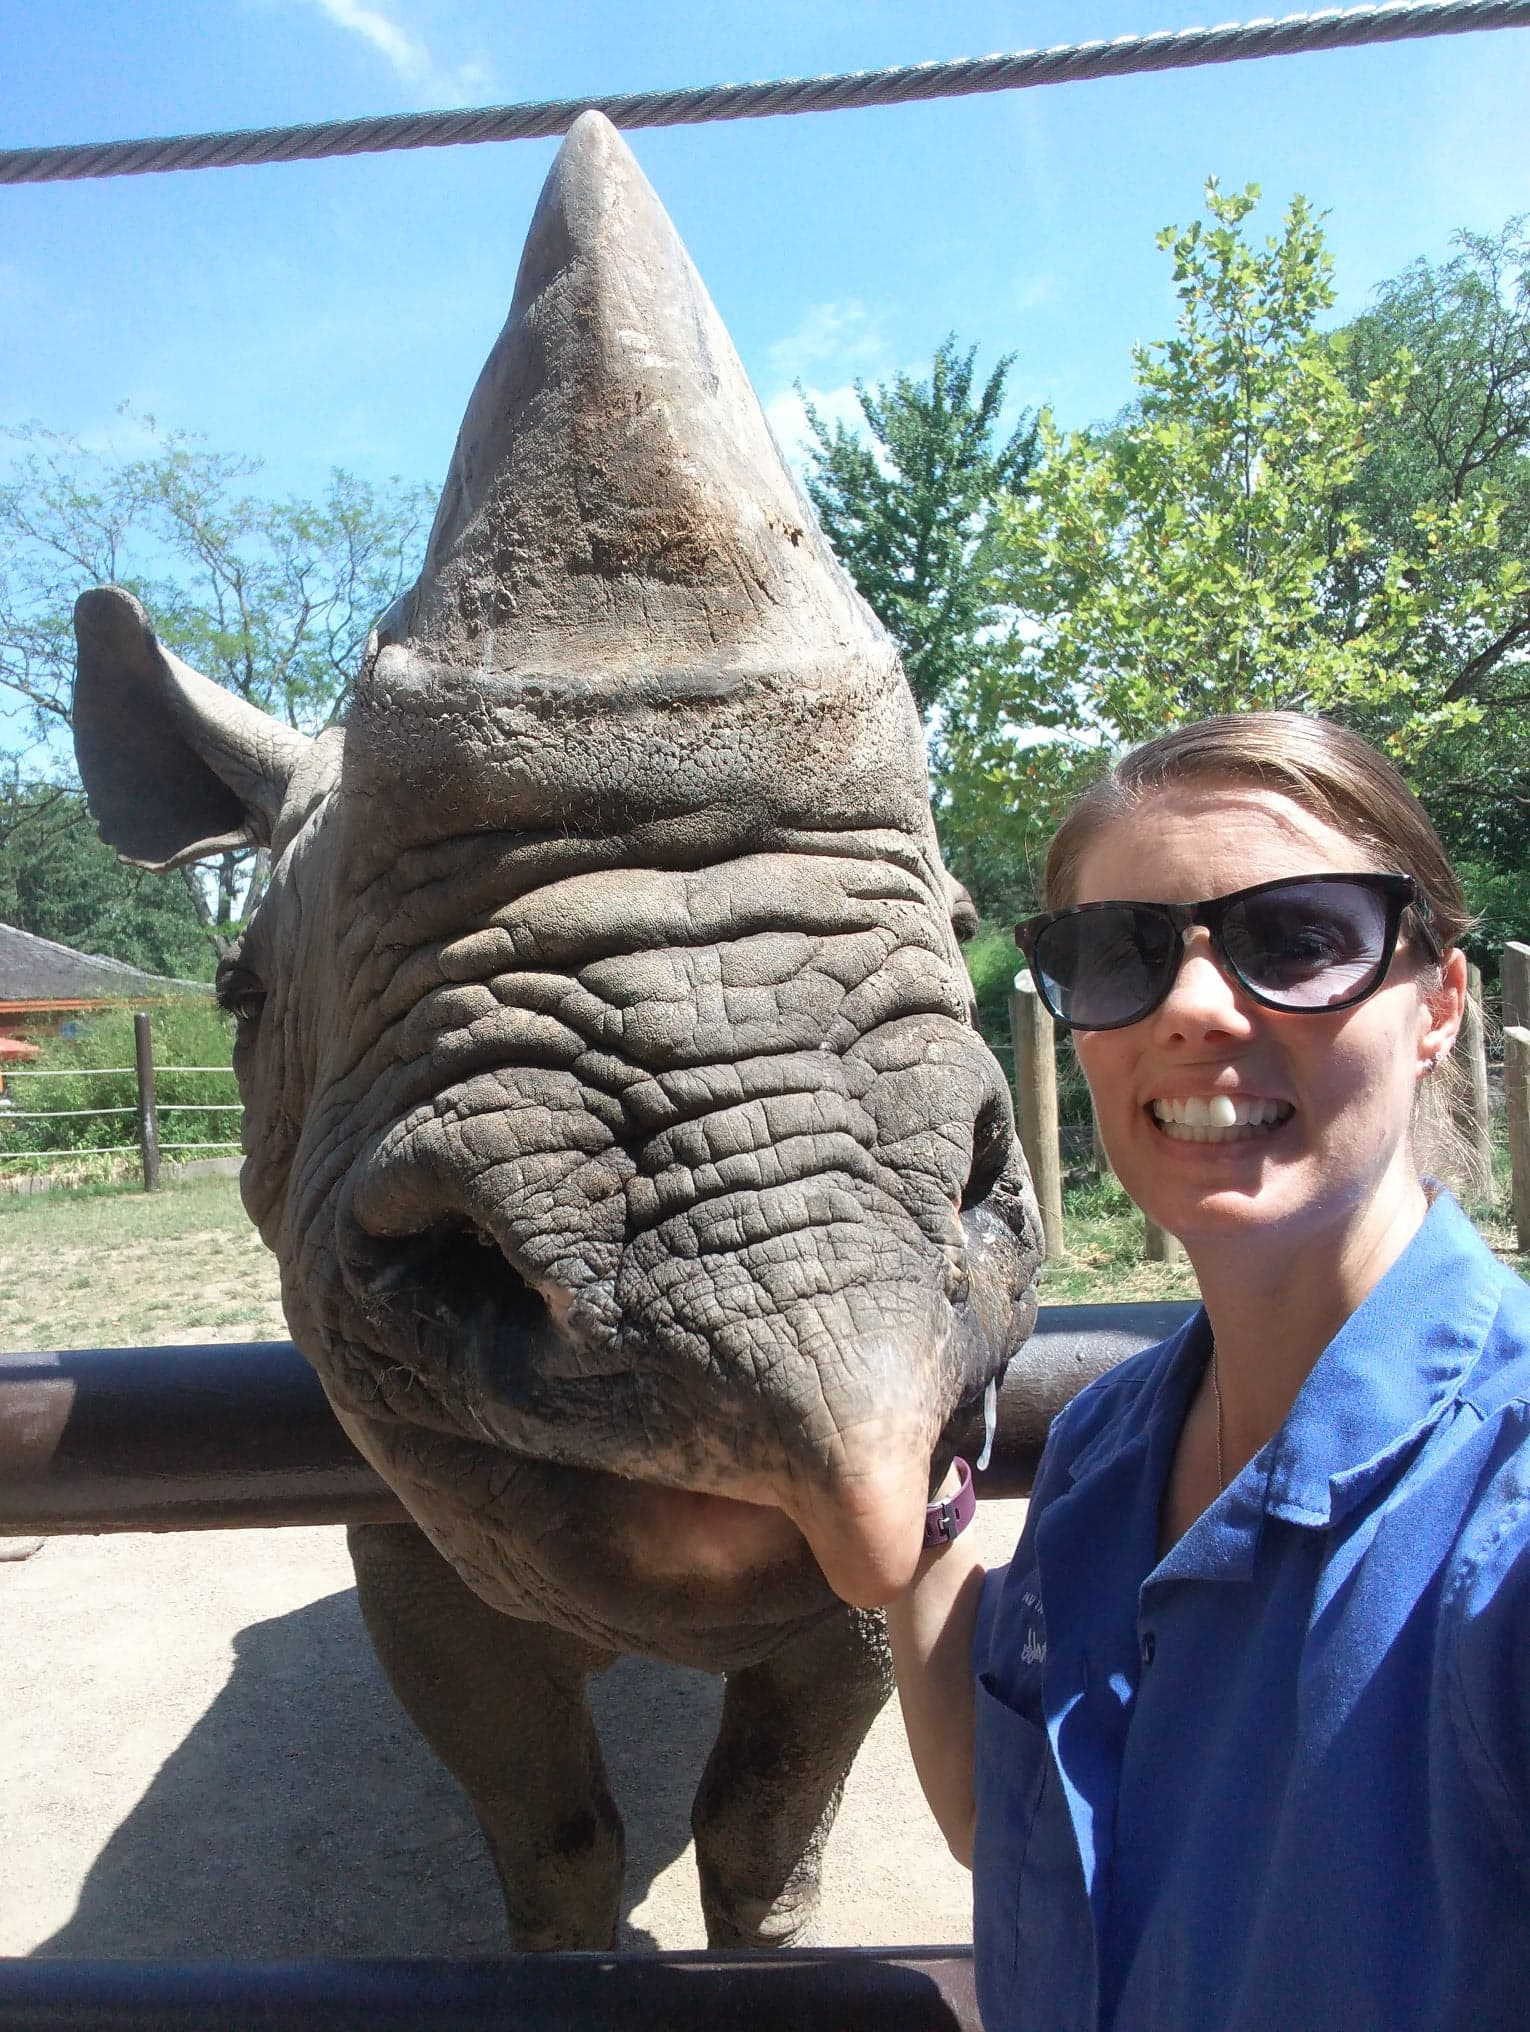 Black rhino Rosie at the Columbus Zoo with zookeeper, trainer